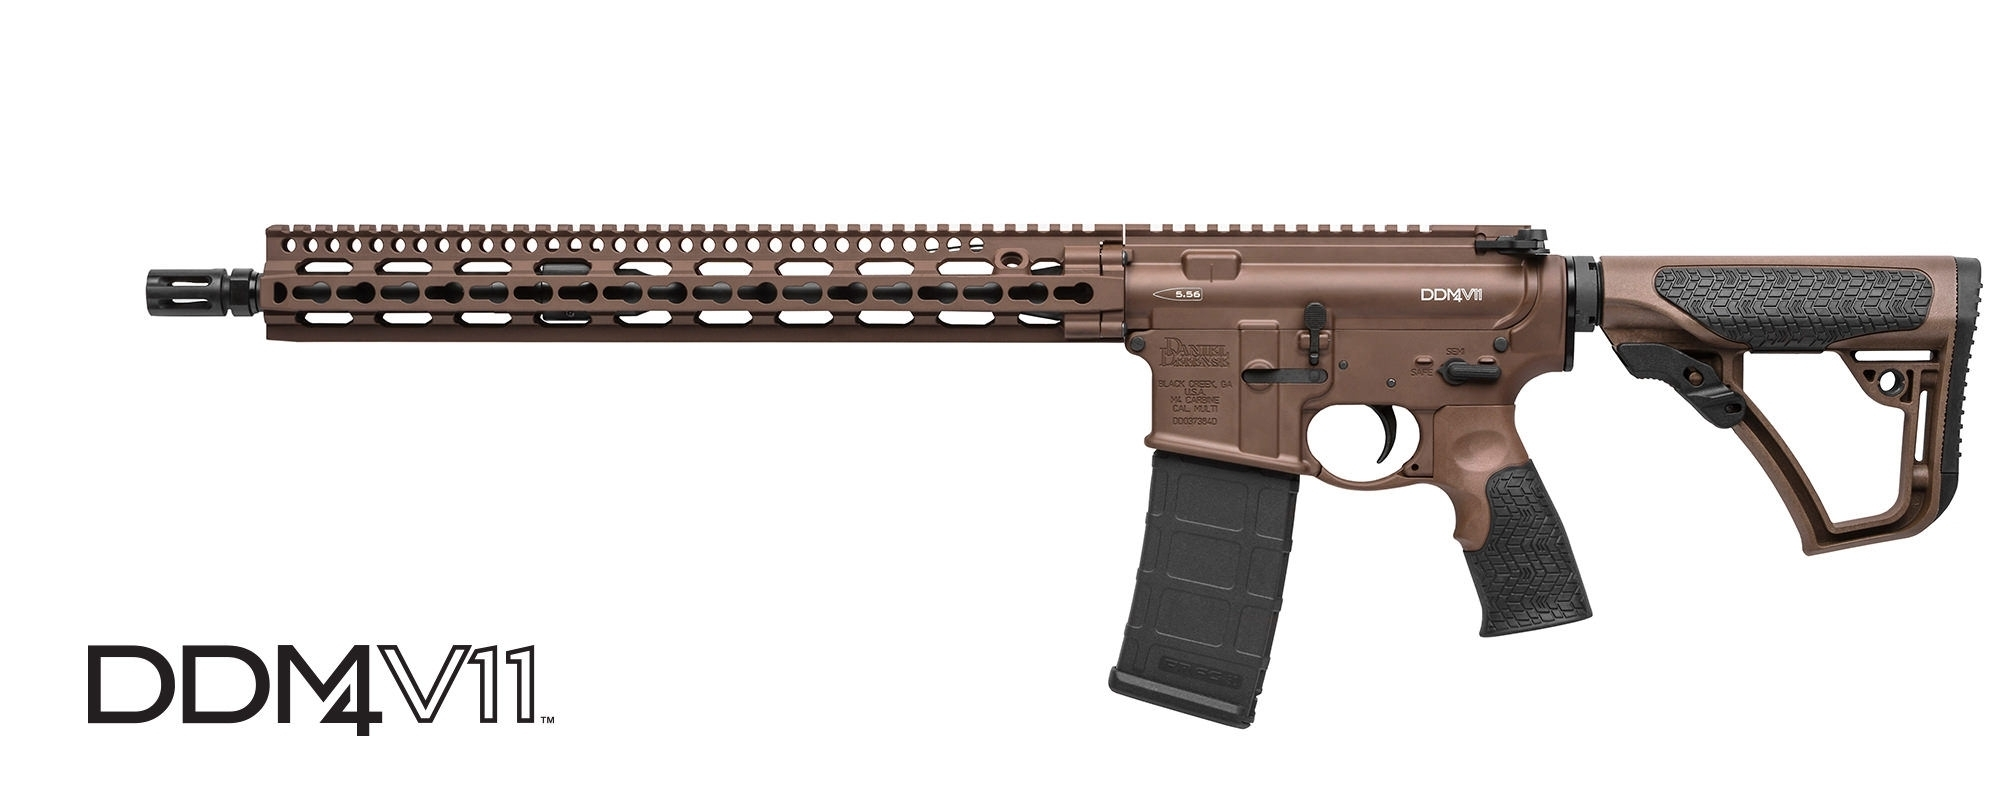 "DANIEL DEFENSE M4 V11 SEMI-AUTO CARBINE, 223 (5.56MM NATO), 16"" BBL, MIL SPEC+, NEW"